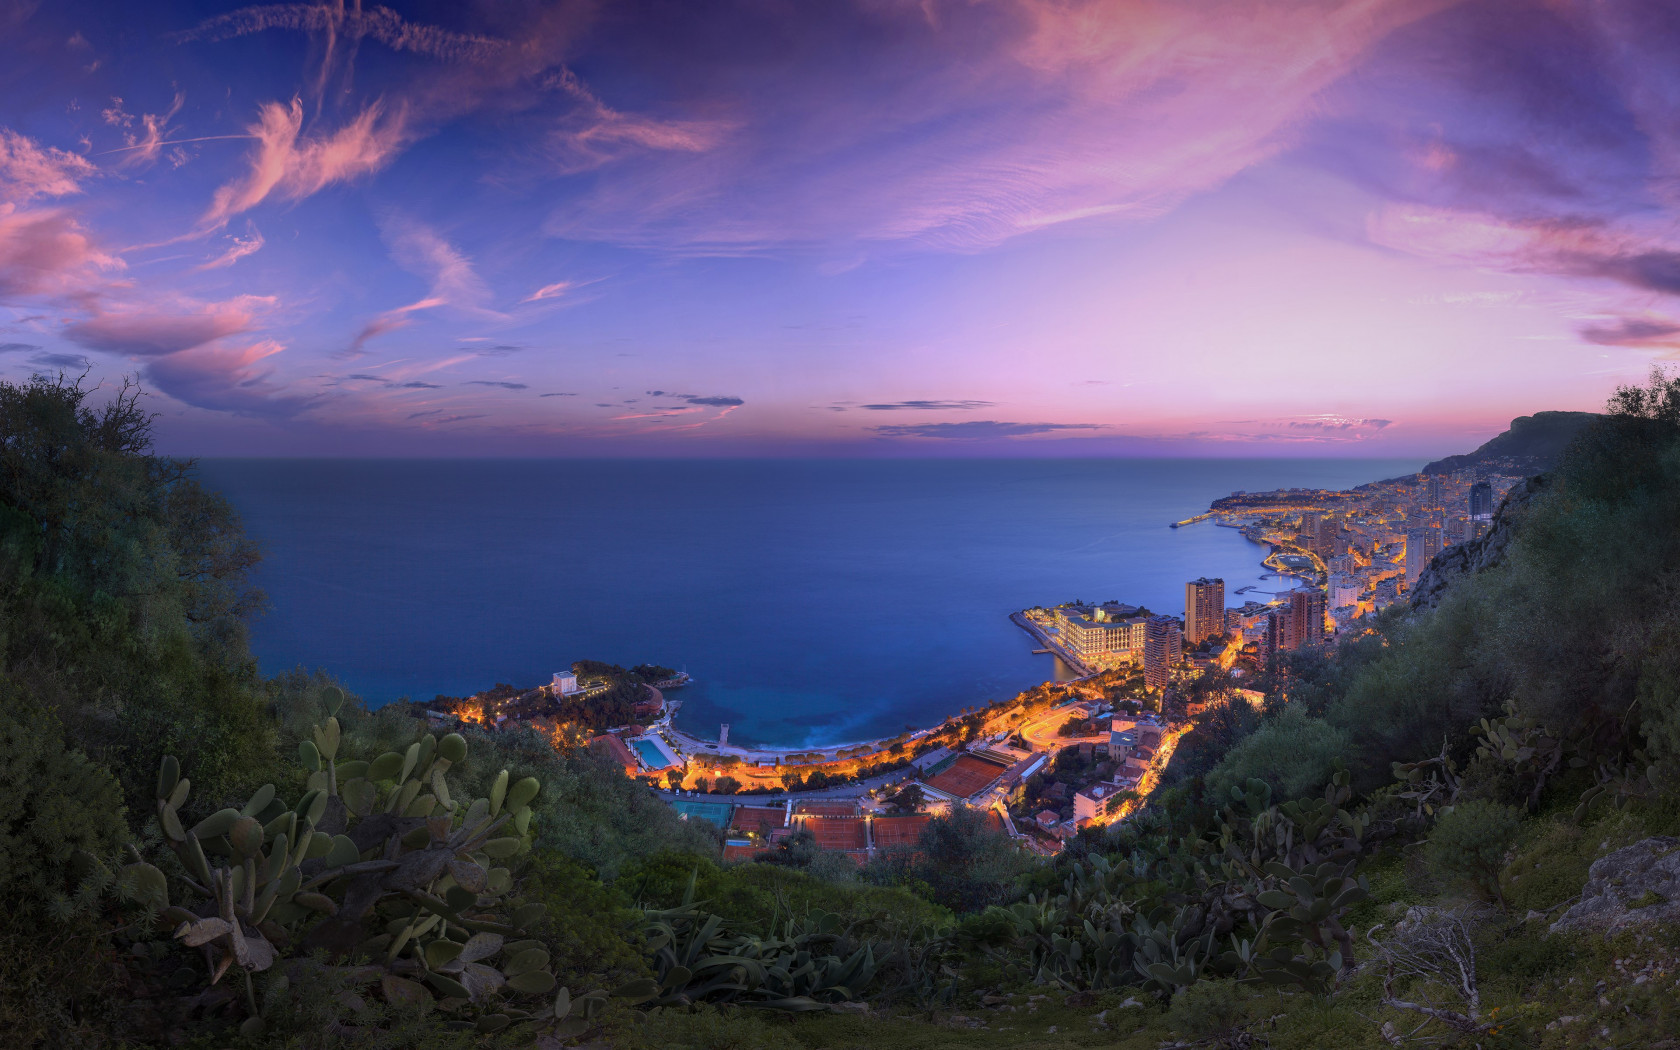 Sunset over the Monaco wallpaper 1680x1050